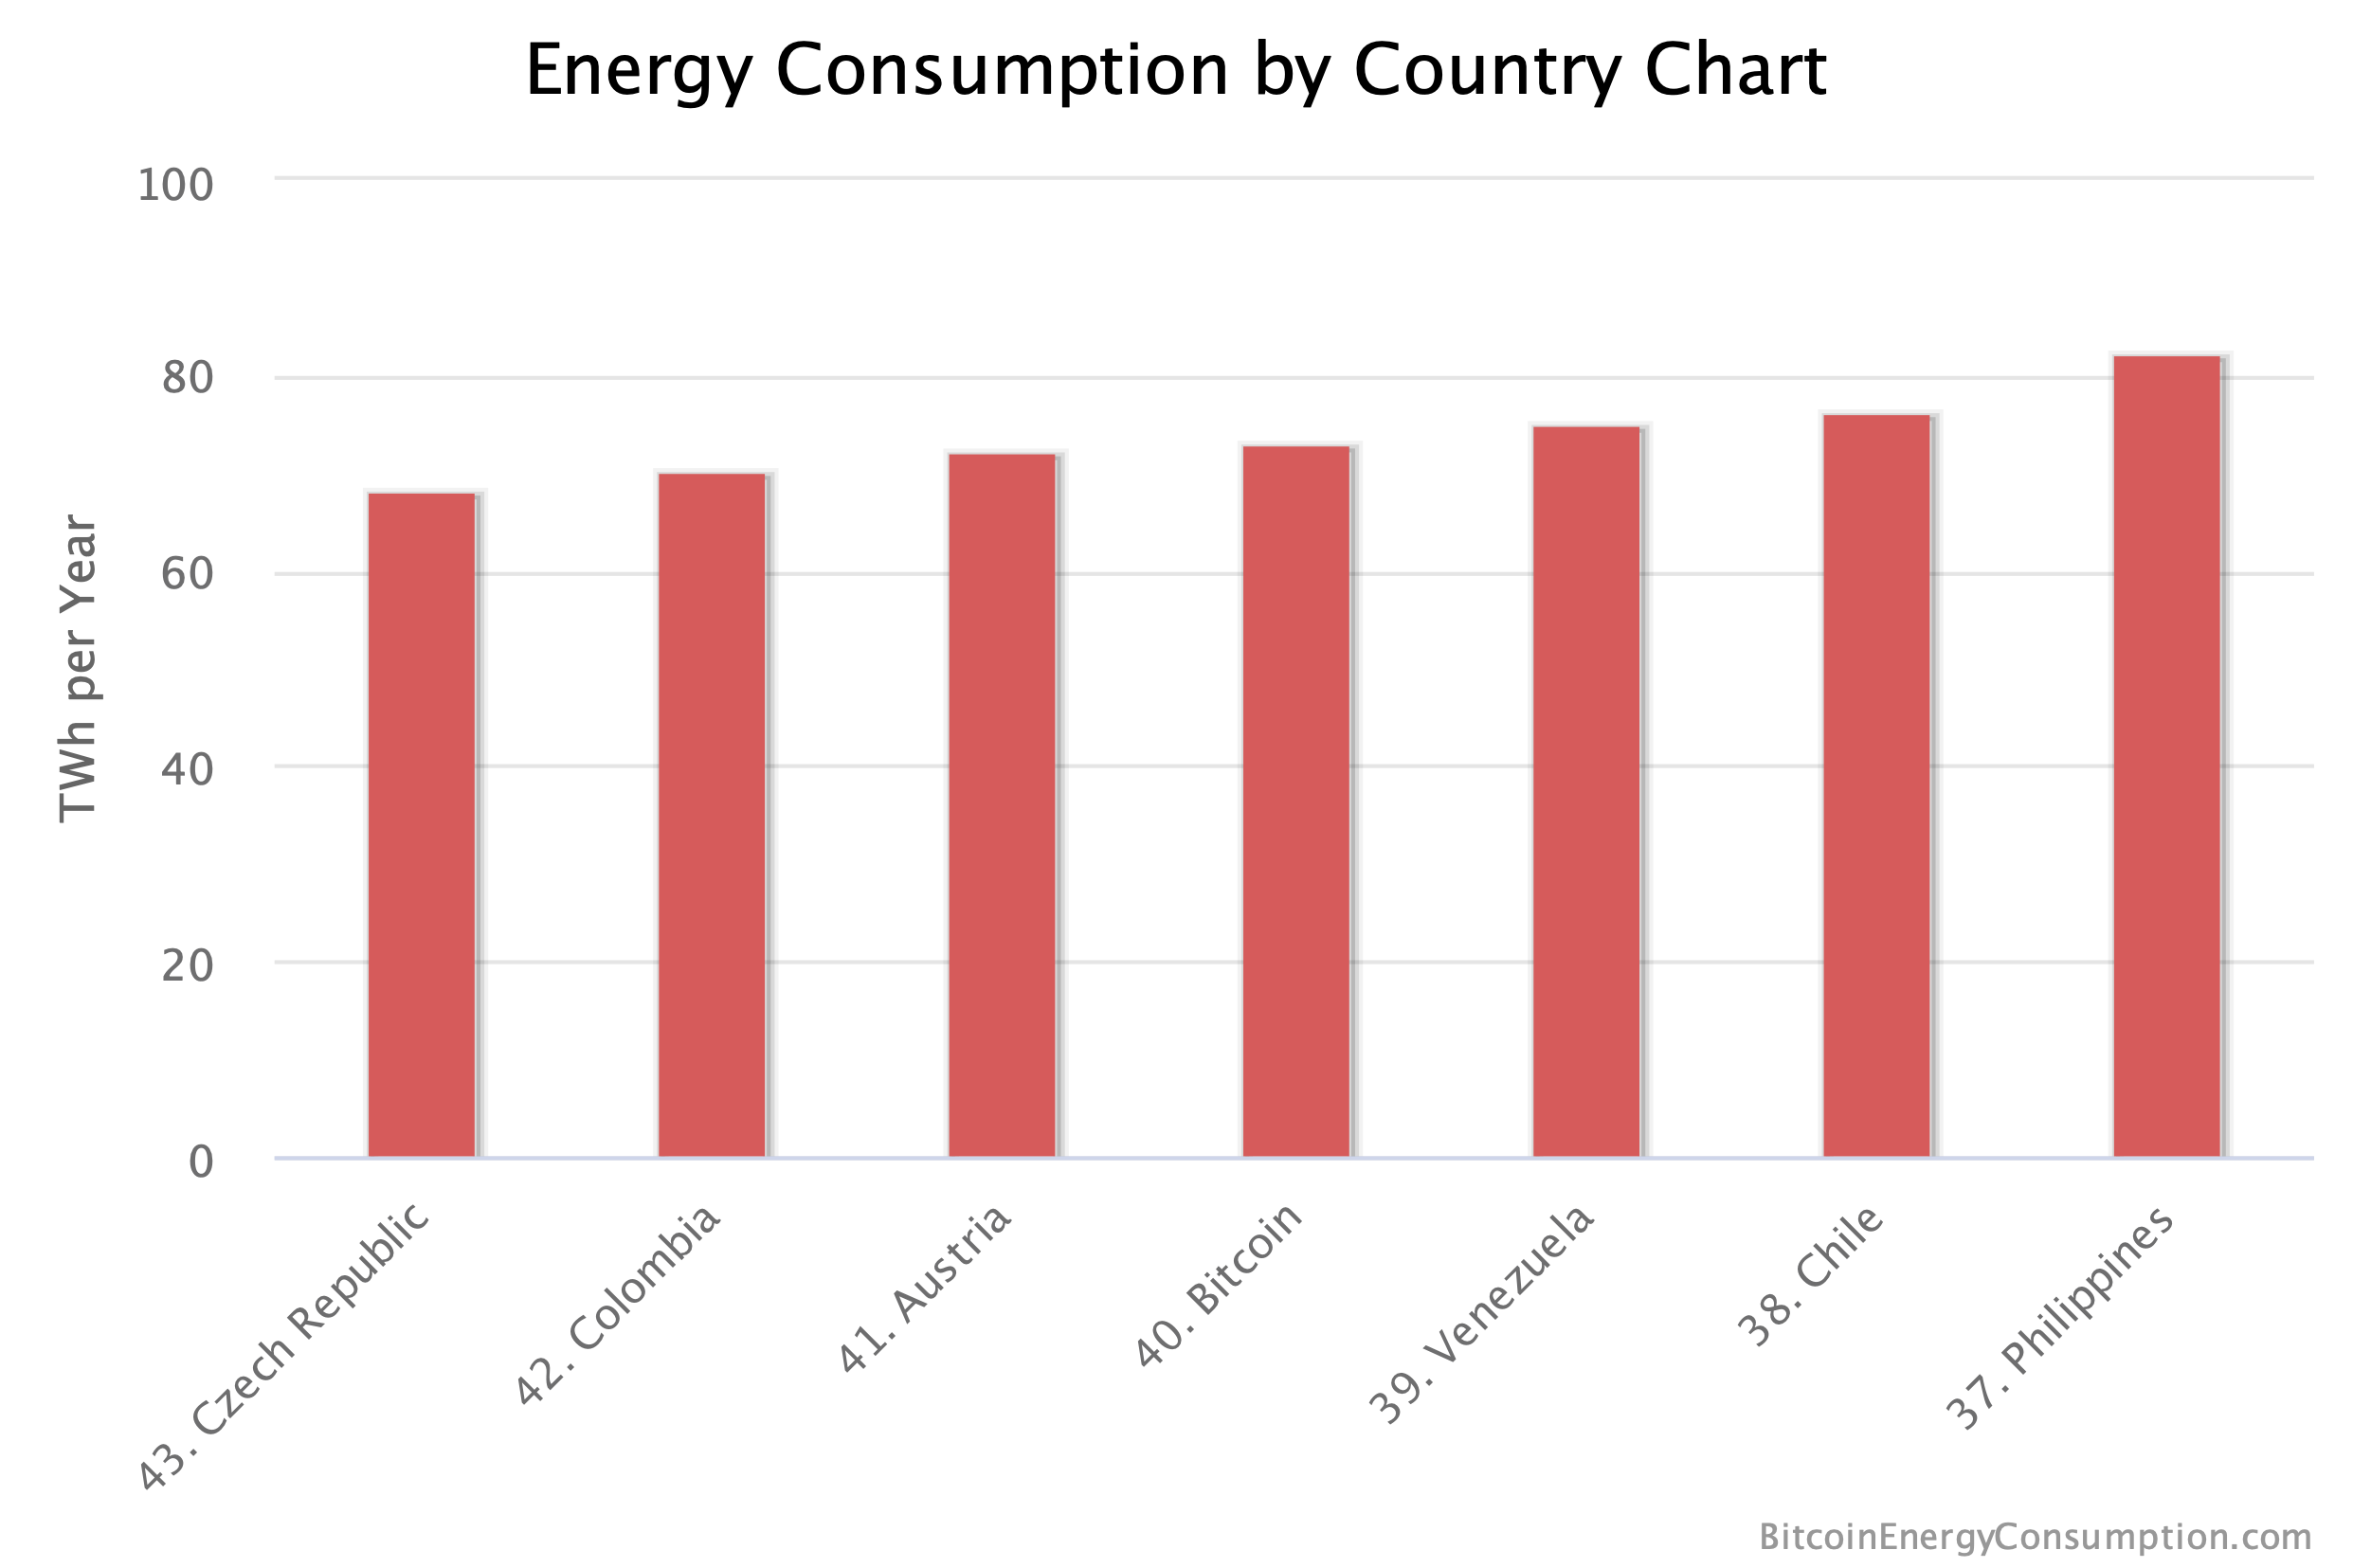 Bitcoin energy utilization compared to other Countries